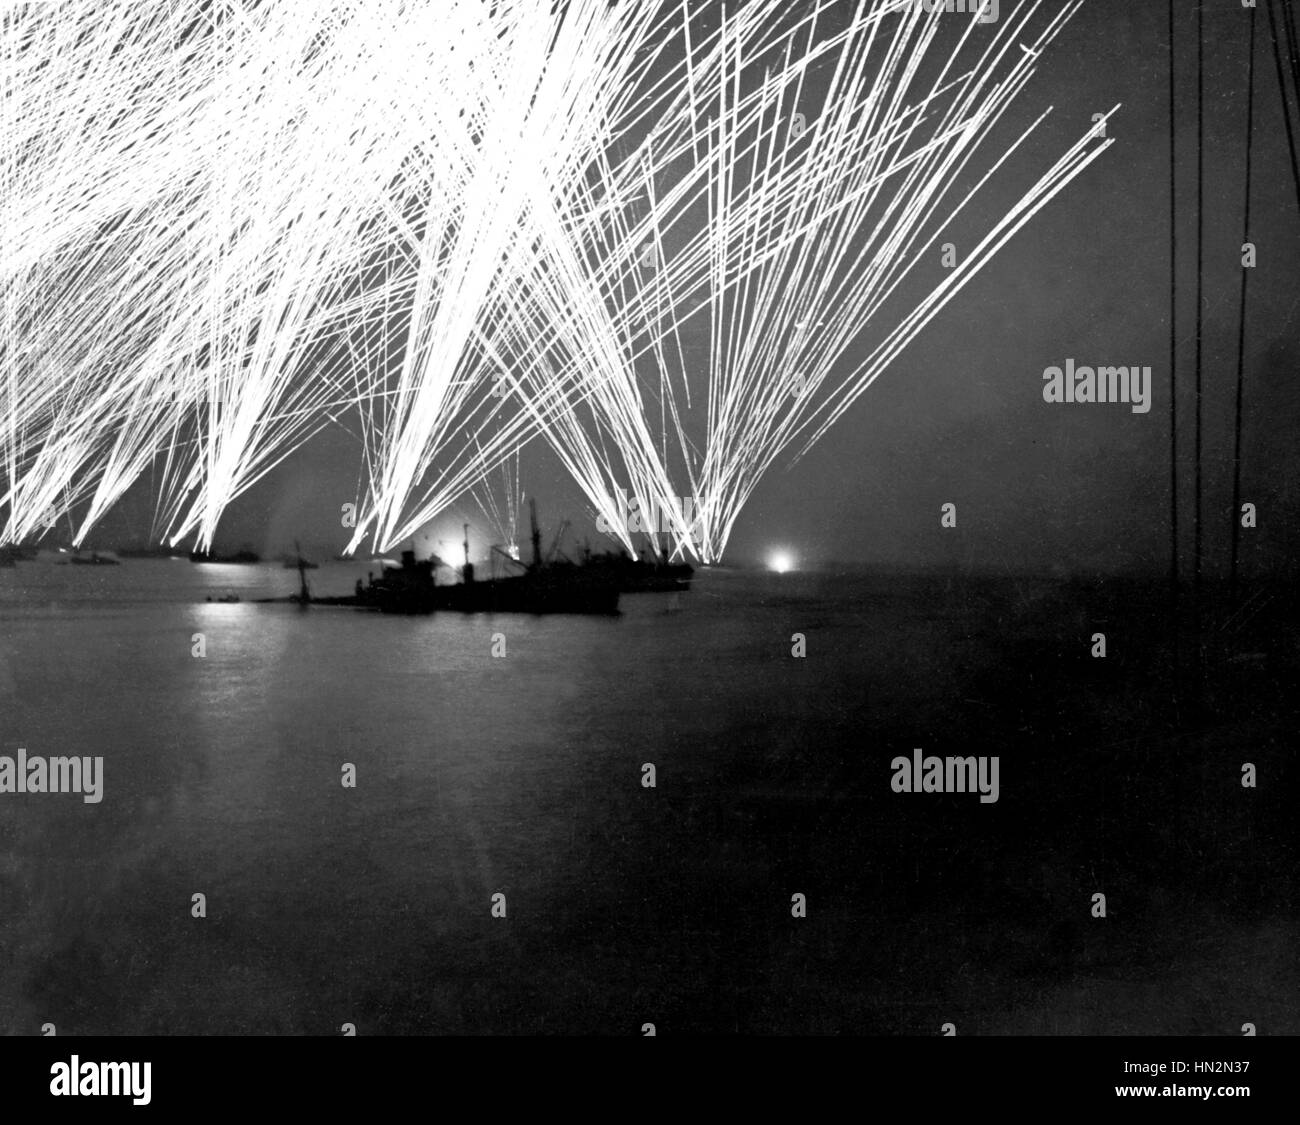 Normandy landings, France The Germans attacking Cherbourg by night, after the Normandy landings June 1944 France - Stock Image